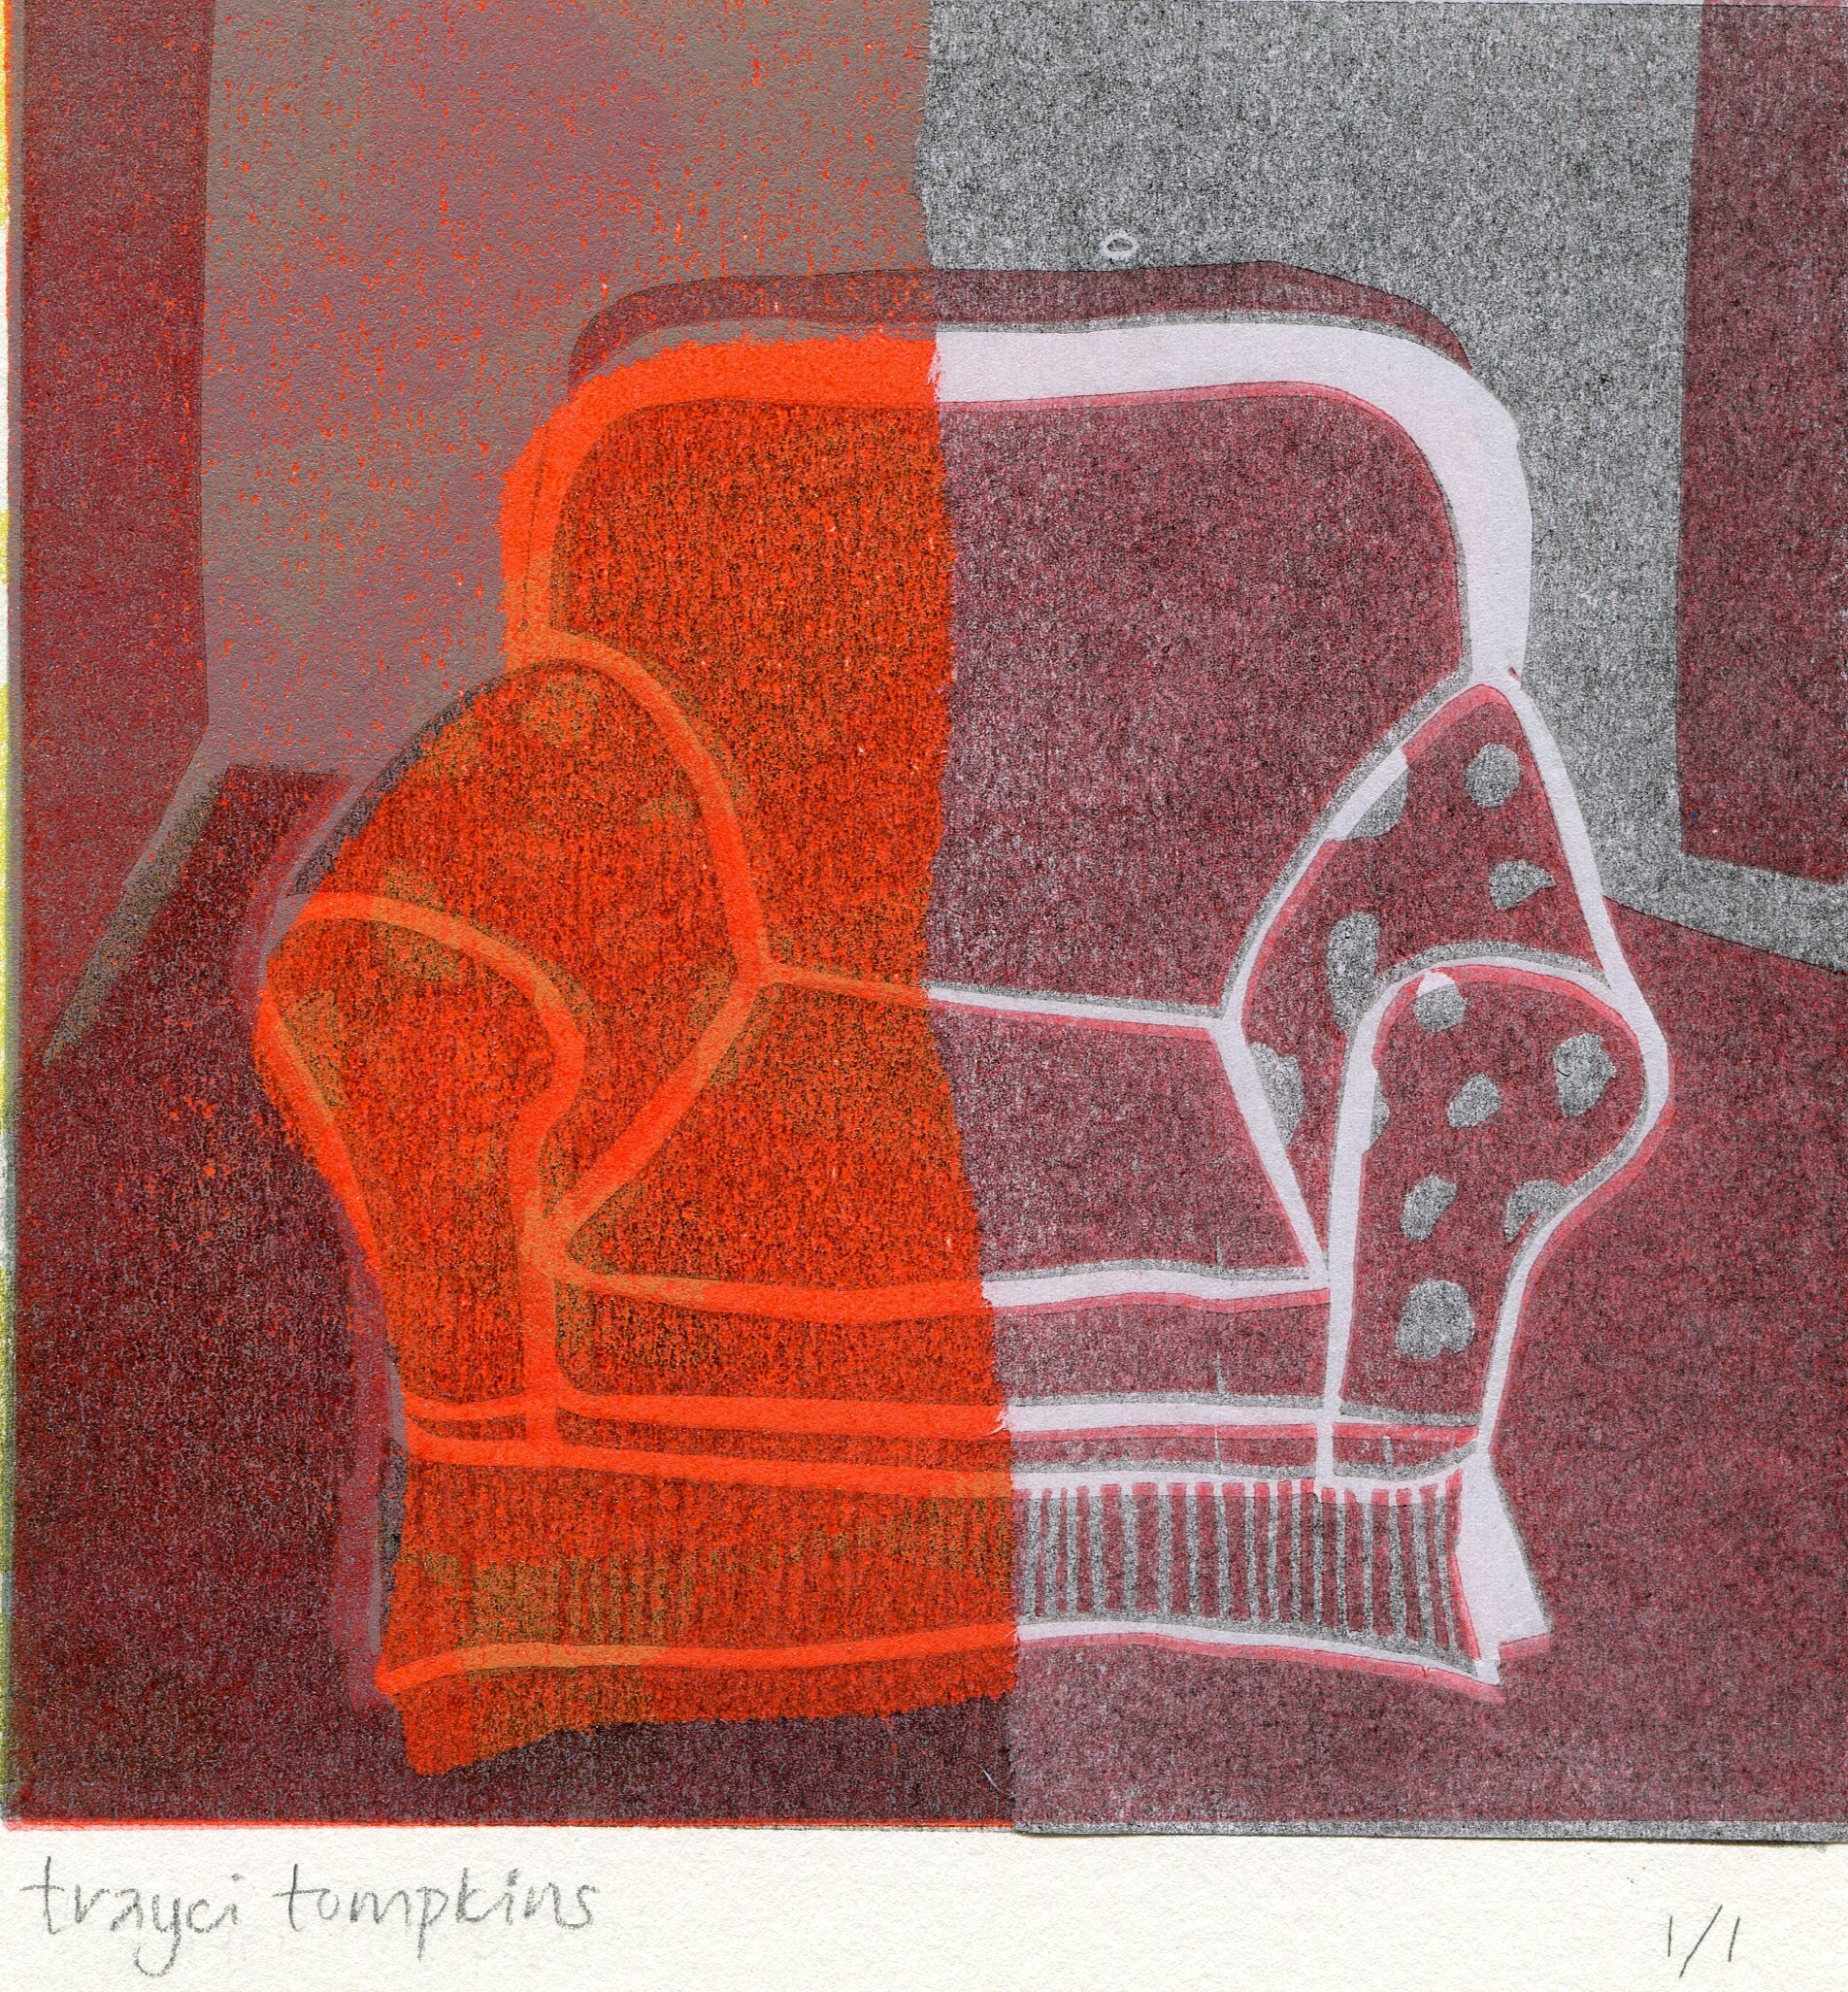 71a   Trayci Tompkins  Surrey chair 1  Lino cut relief print on paper